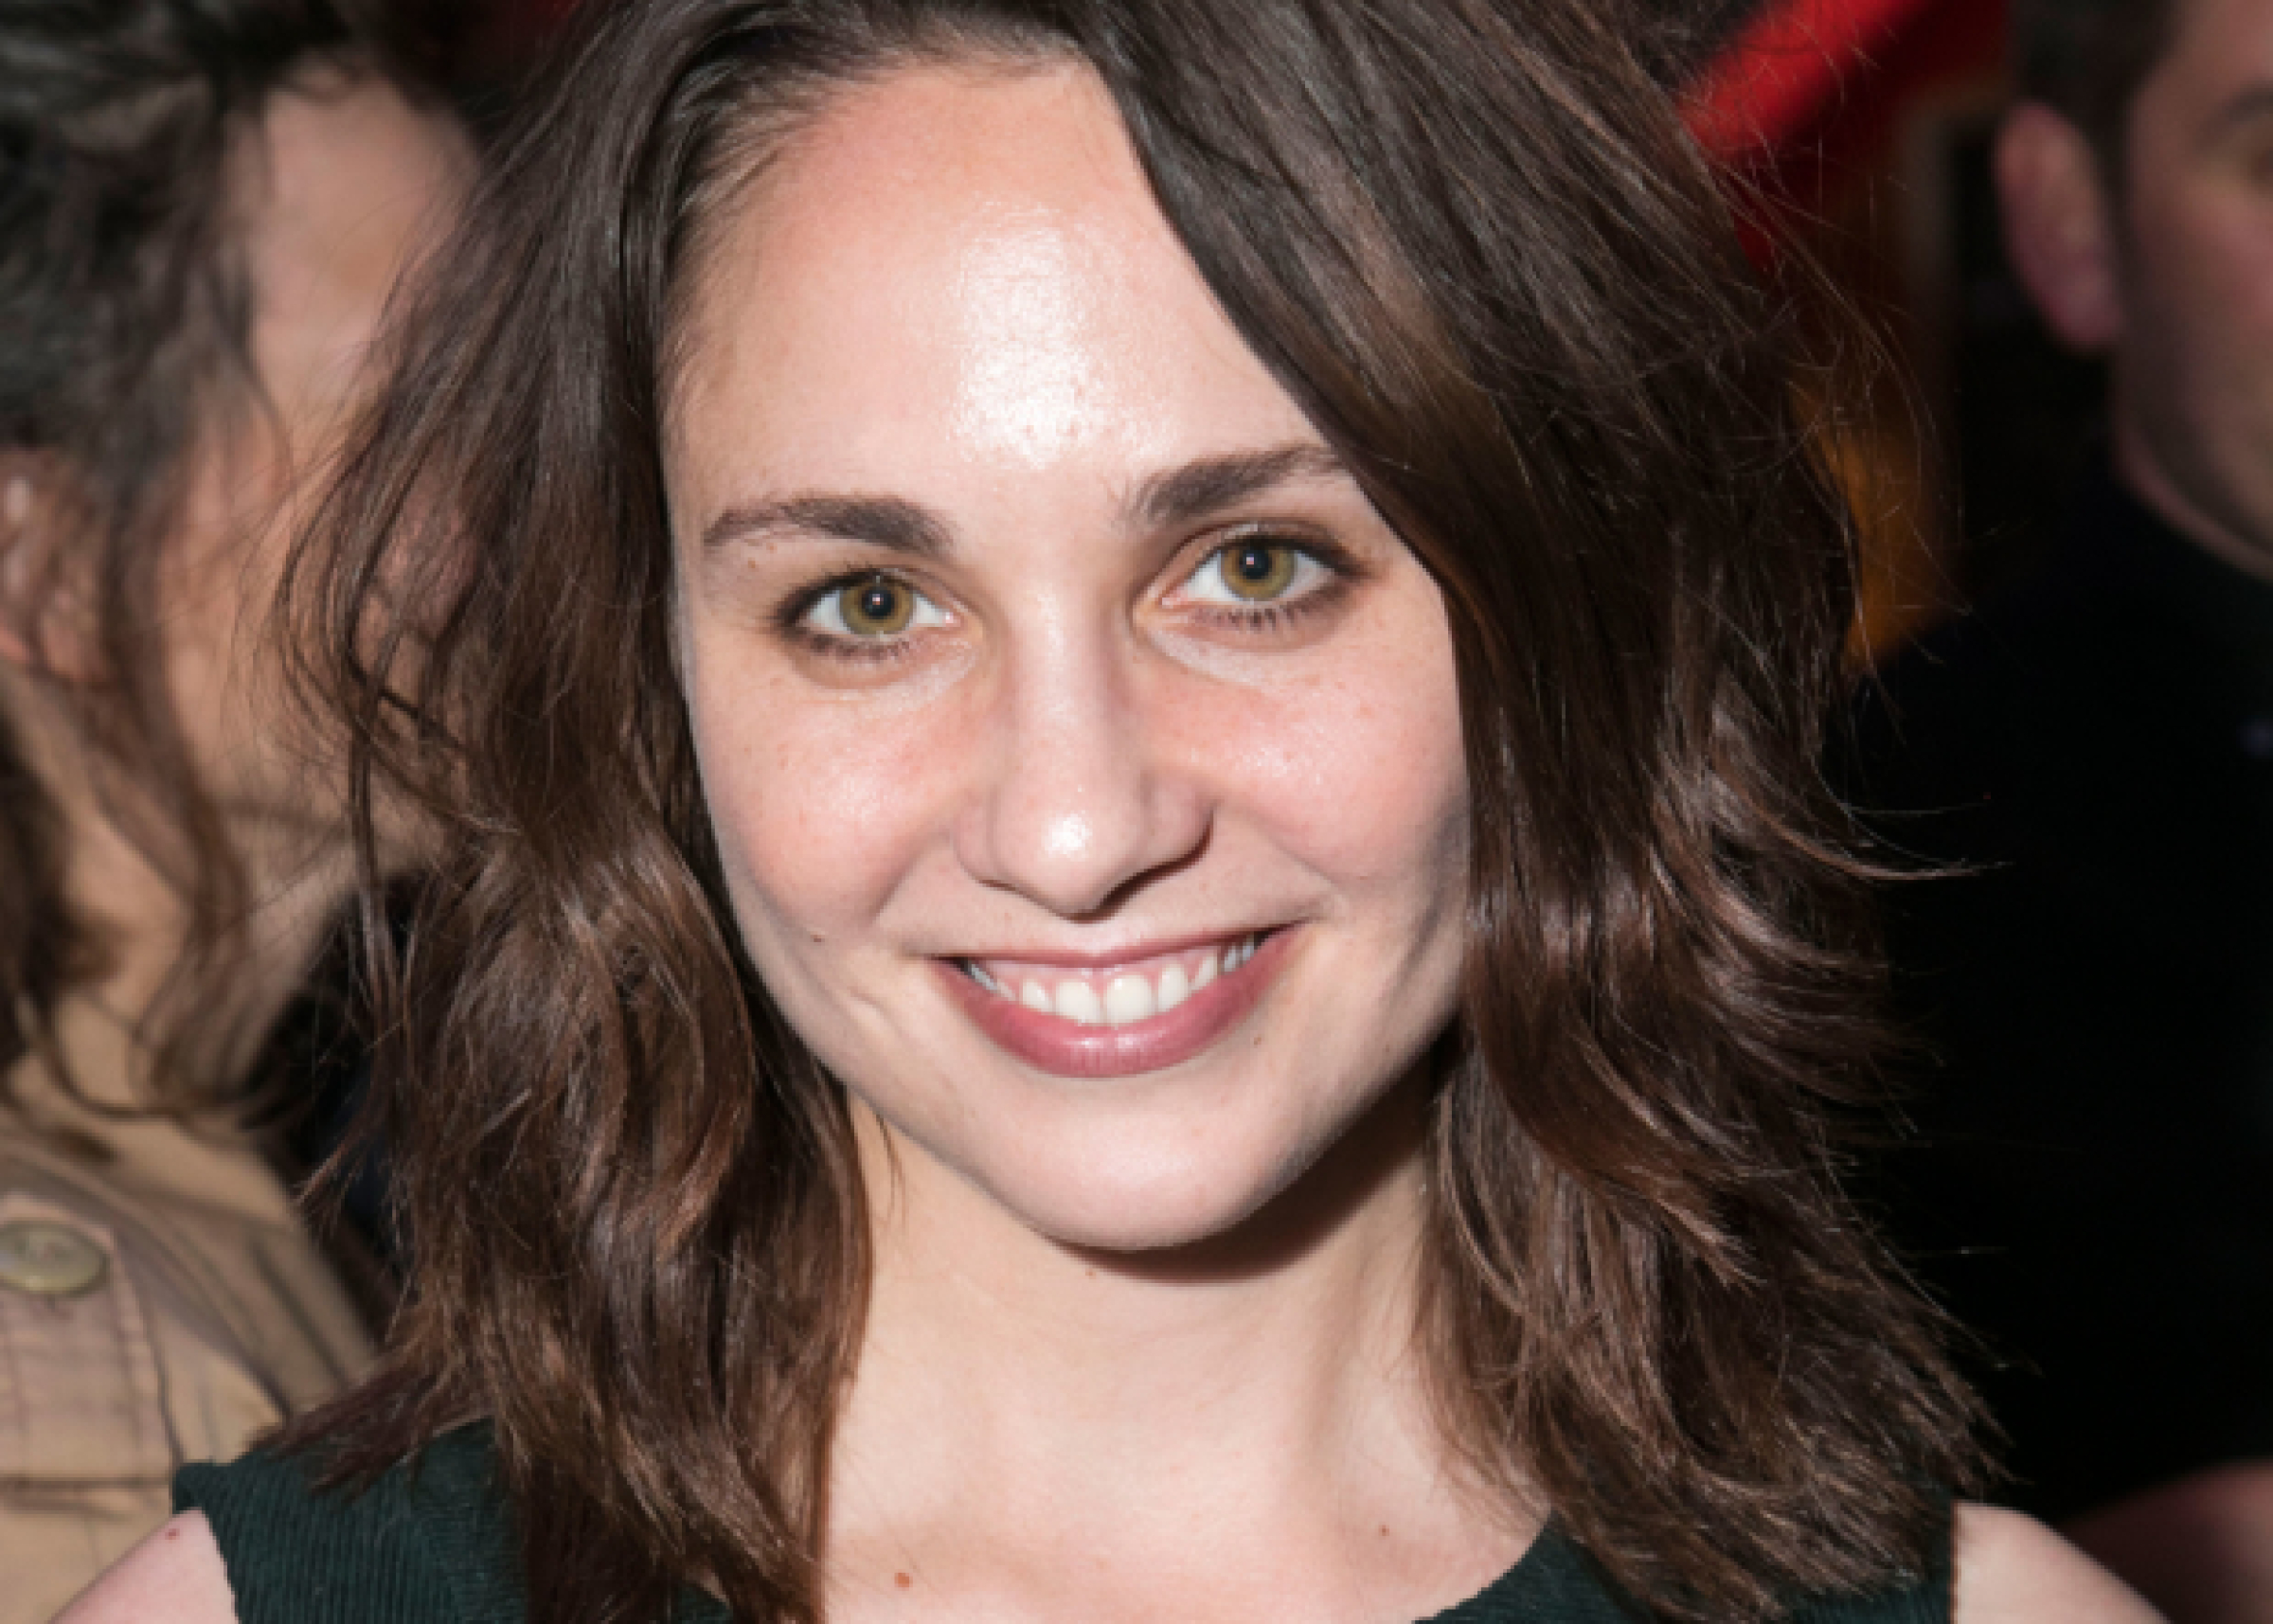 Tuppence Middleton nudes (32 photo), Topless, Sideboobs, Twitter, braless 2020